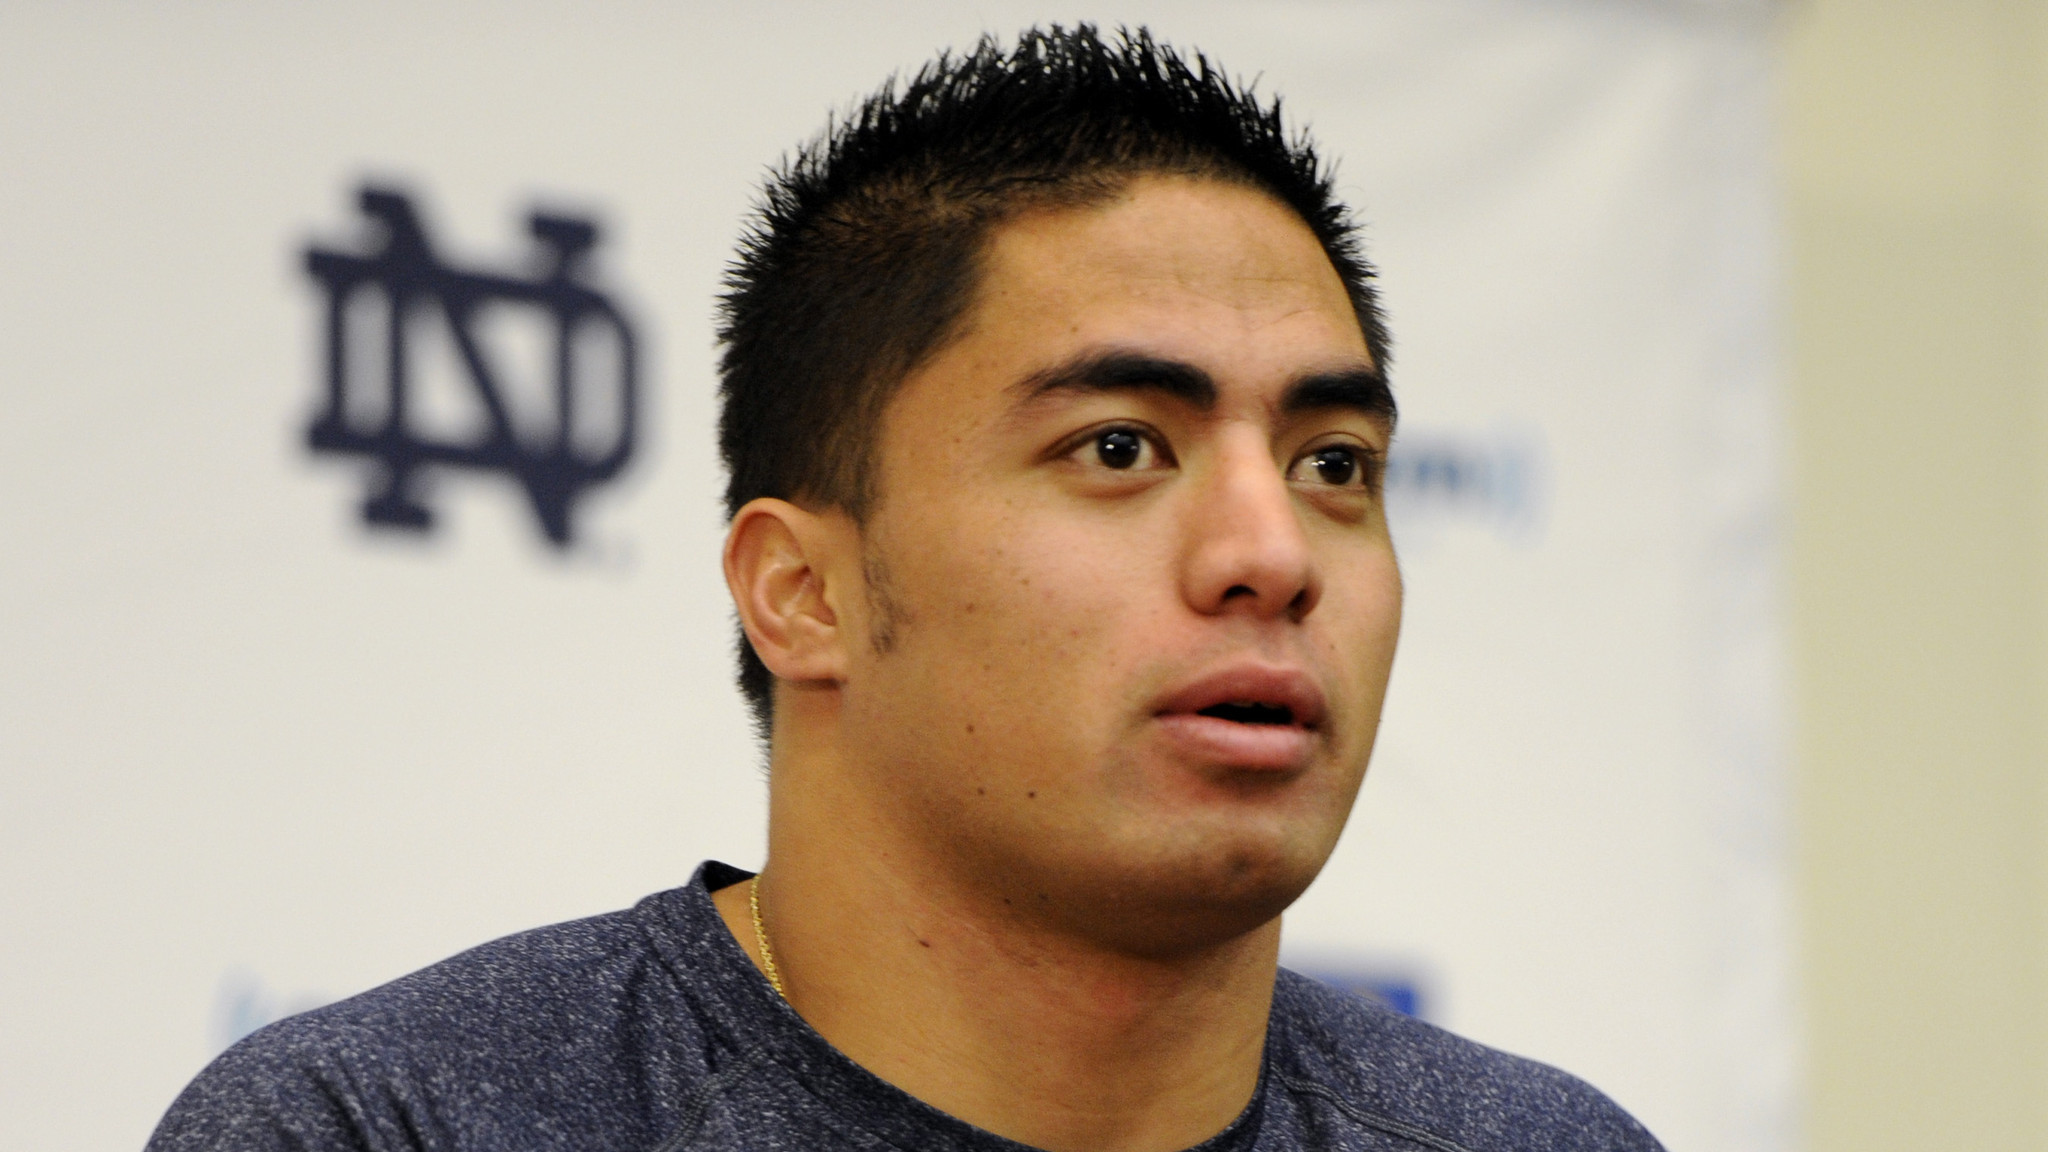 Manti Te'o, hoax participant or victim?